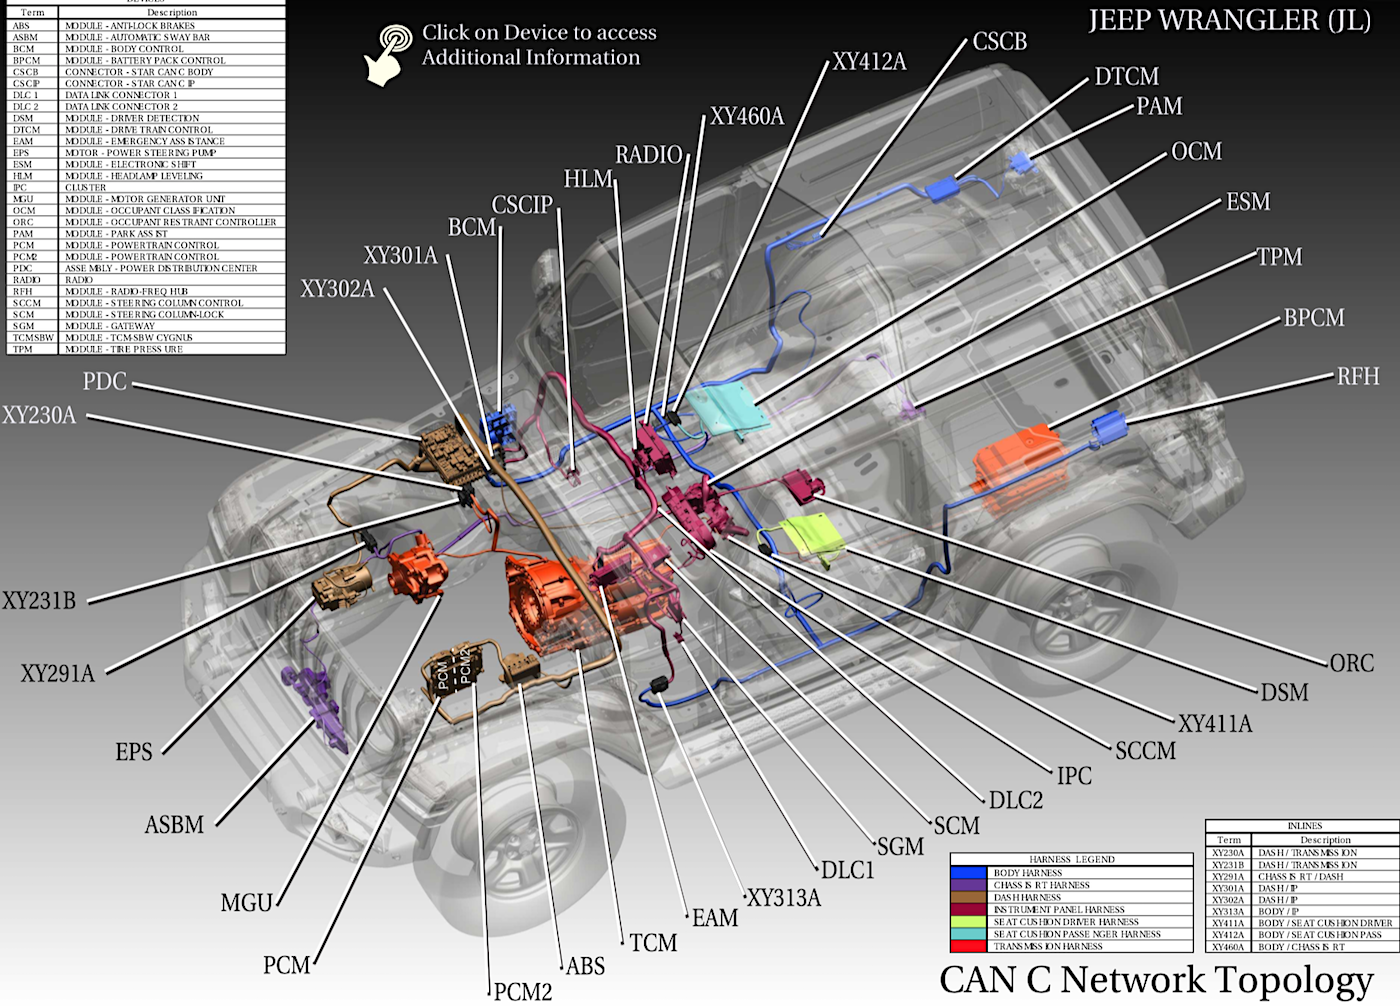 gladiator wiring diagrams (shared with jl) | jeep gladiator forum -  jeepgladiatorforum.com  jeep gladiator forum